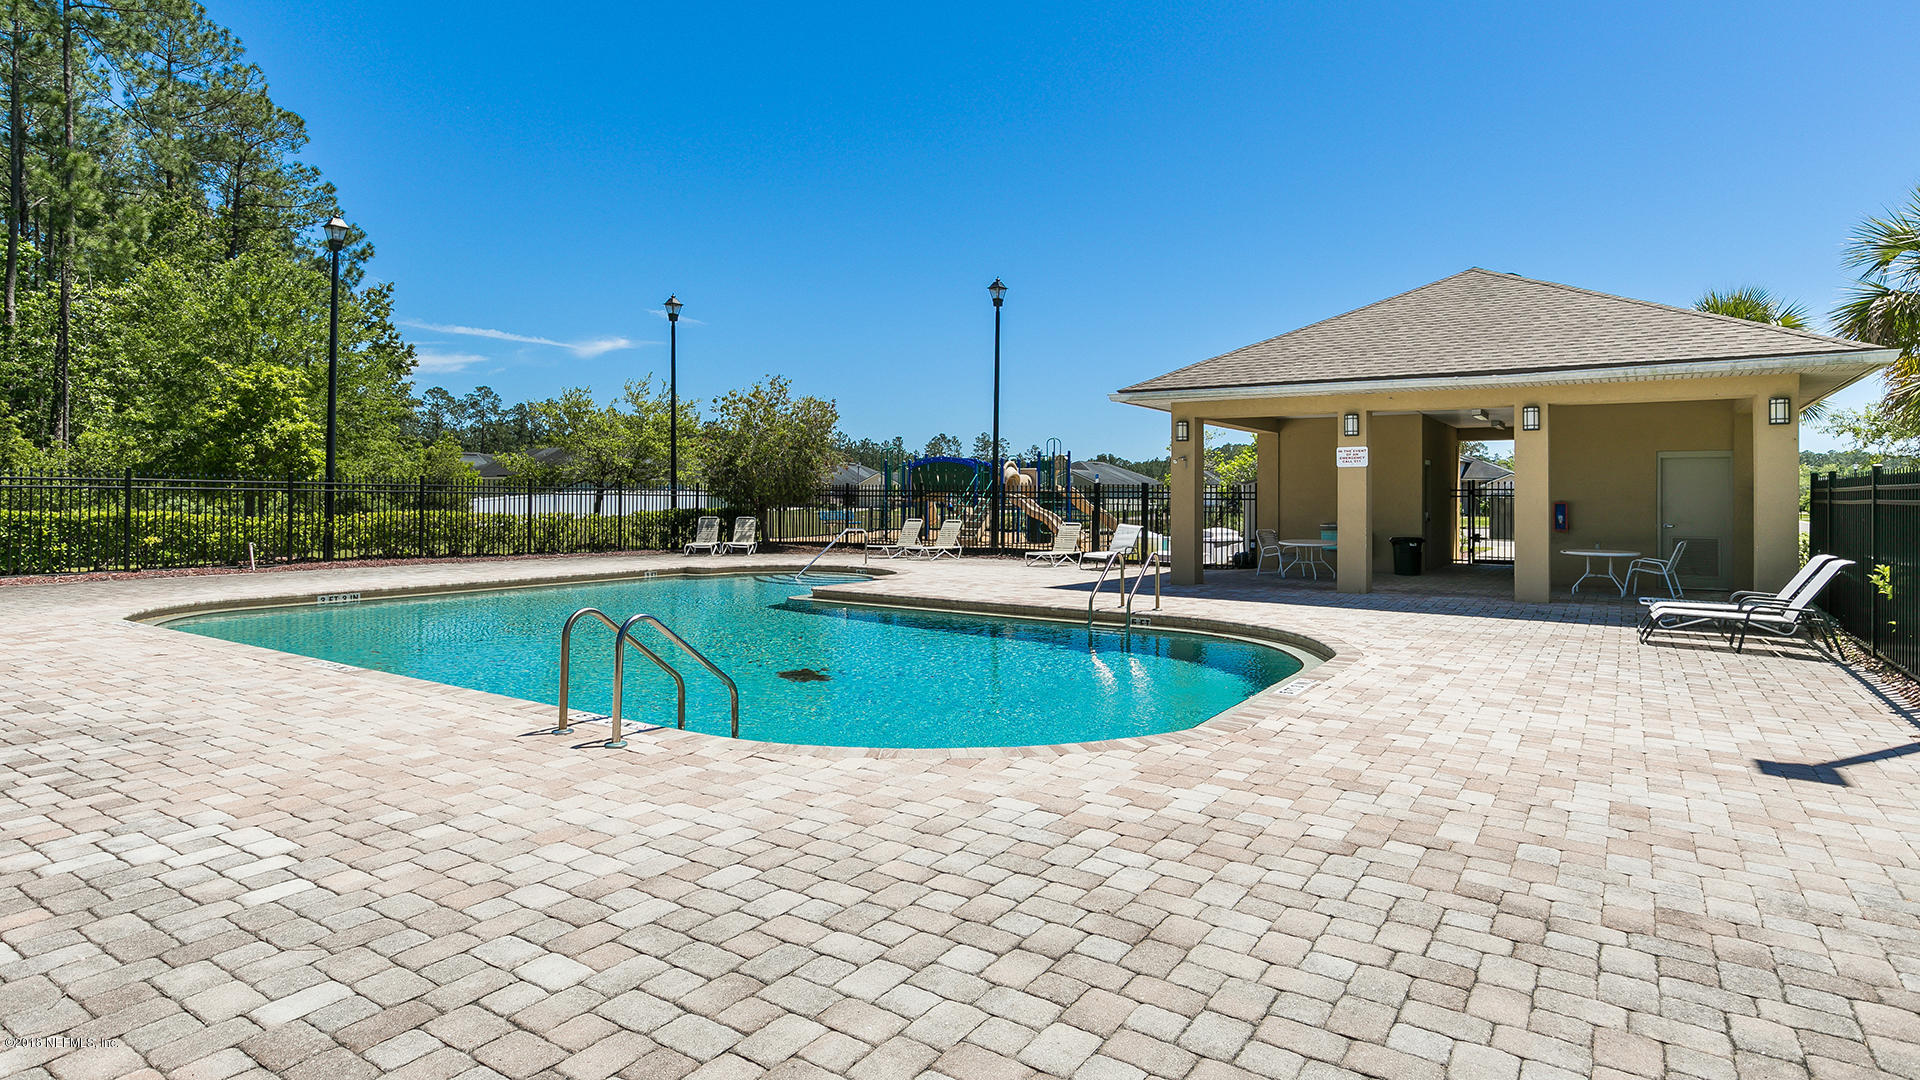 3201 ROGERS, JACKSONVILLE, FLORIDA 32208, 3 Bedrooms Bedrooms, ,2 BathroomsBathrooms,Residential - single family,For sale,ROGERS,953152